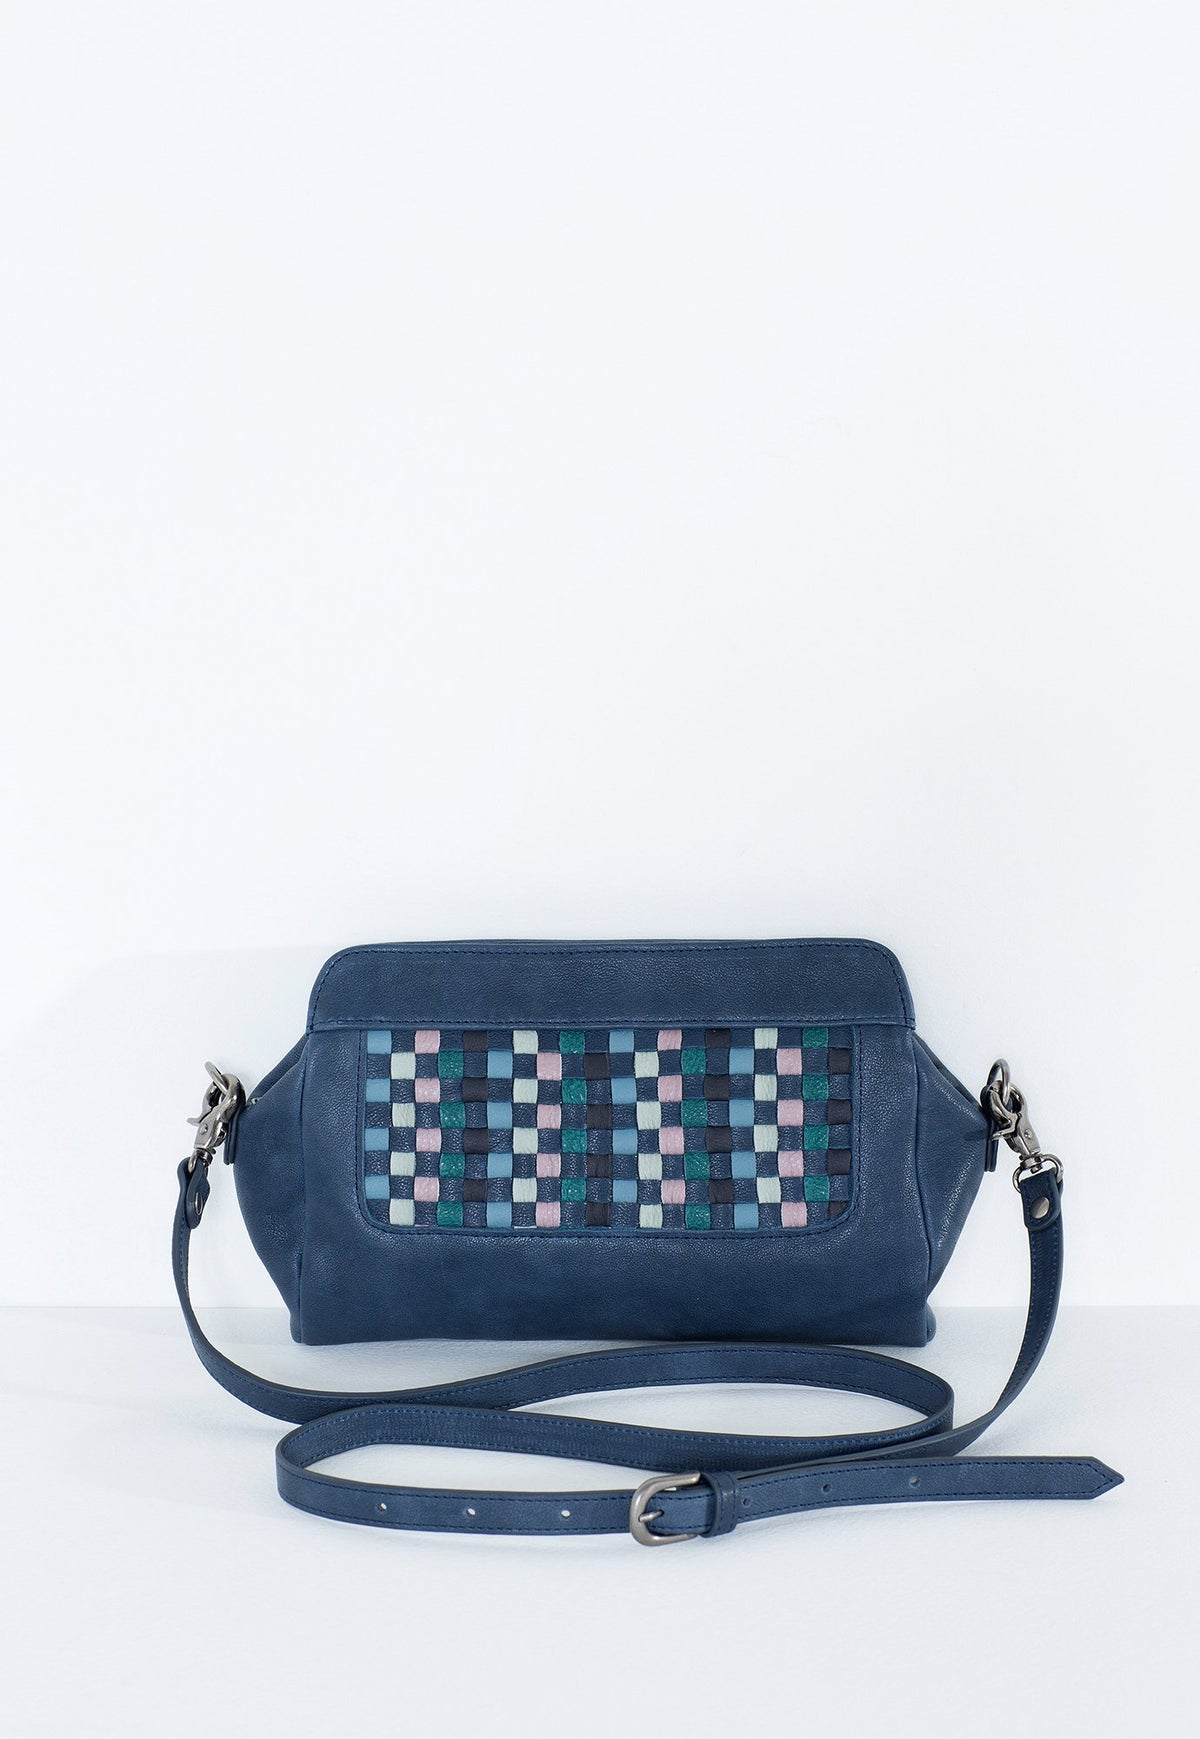 Woven Clutch - Midnight Blue